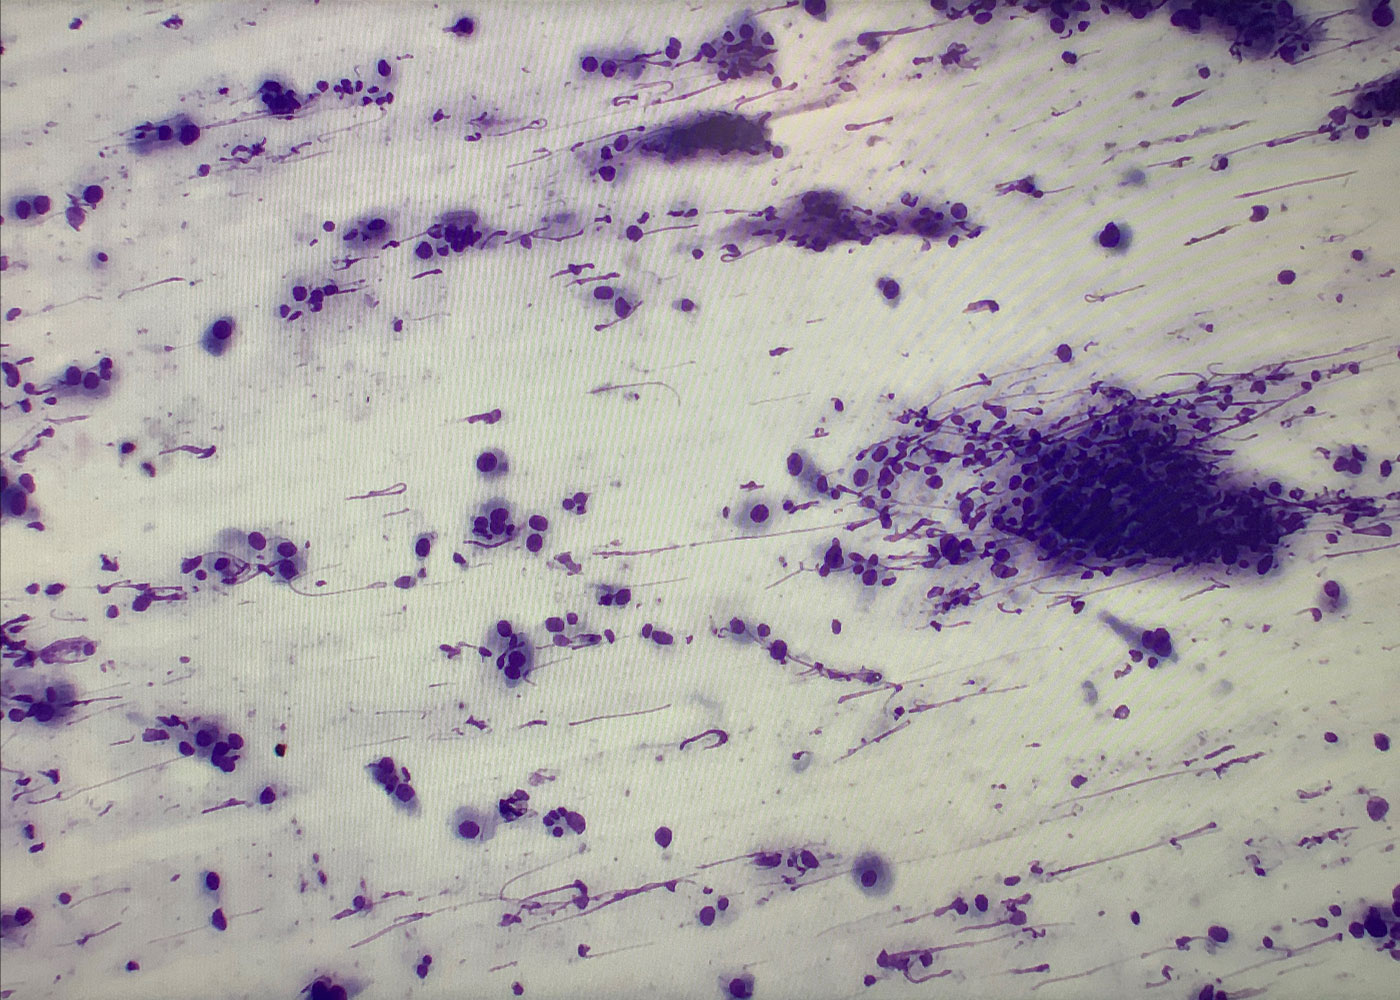 Fig 6. Tissue evaluated with ROSE (Adenocarcinoma)